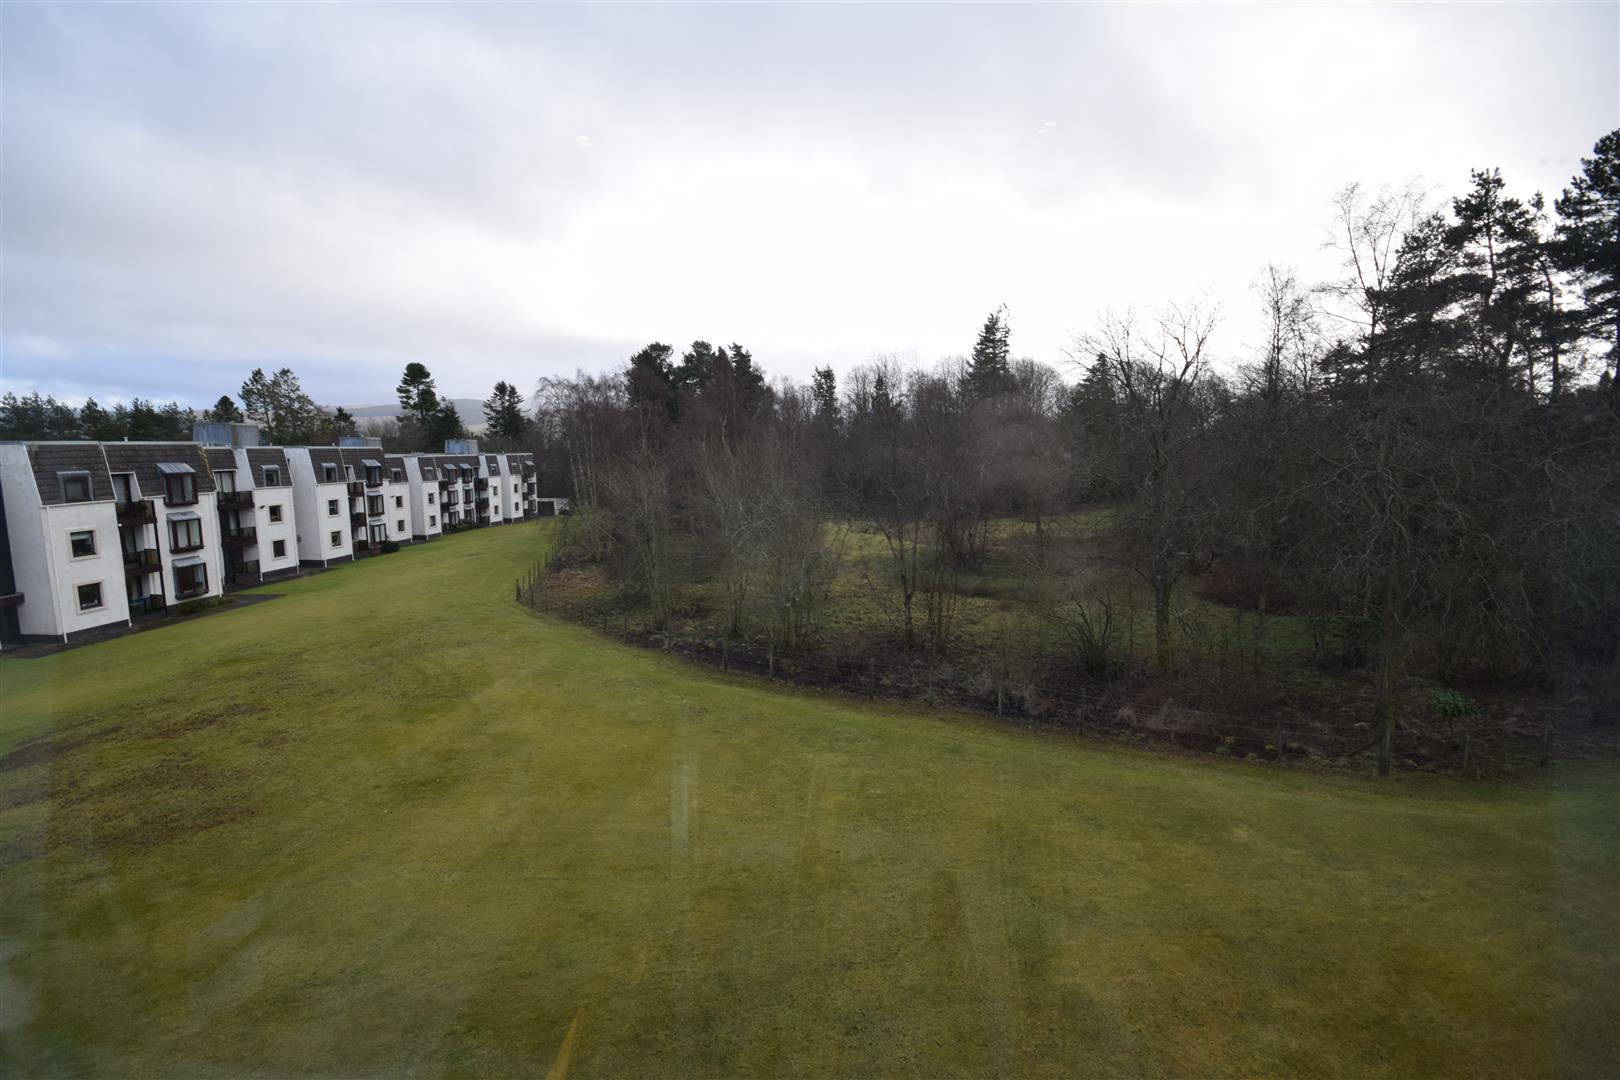 Guthrie Court, Gleneagles Village, Auchterarder, Perthshire, PH3 1SD, UK